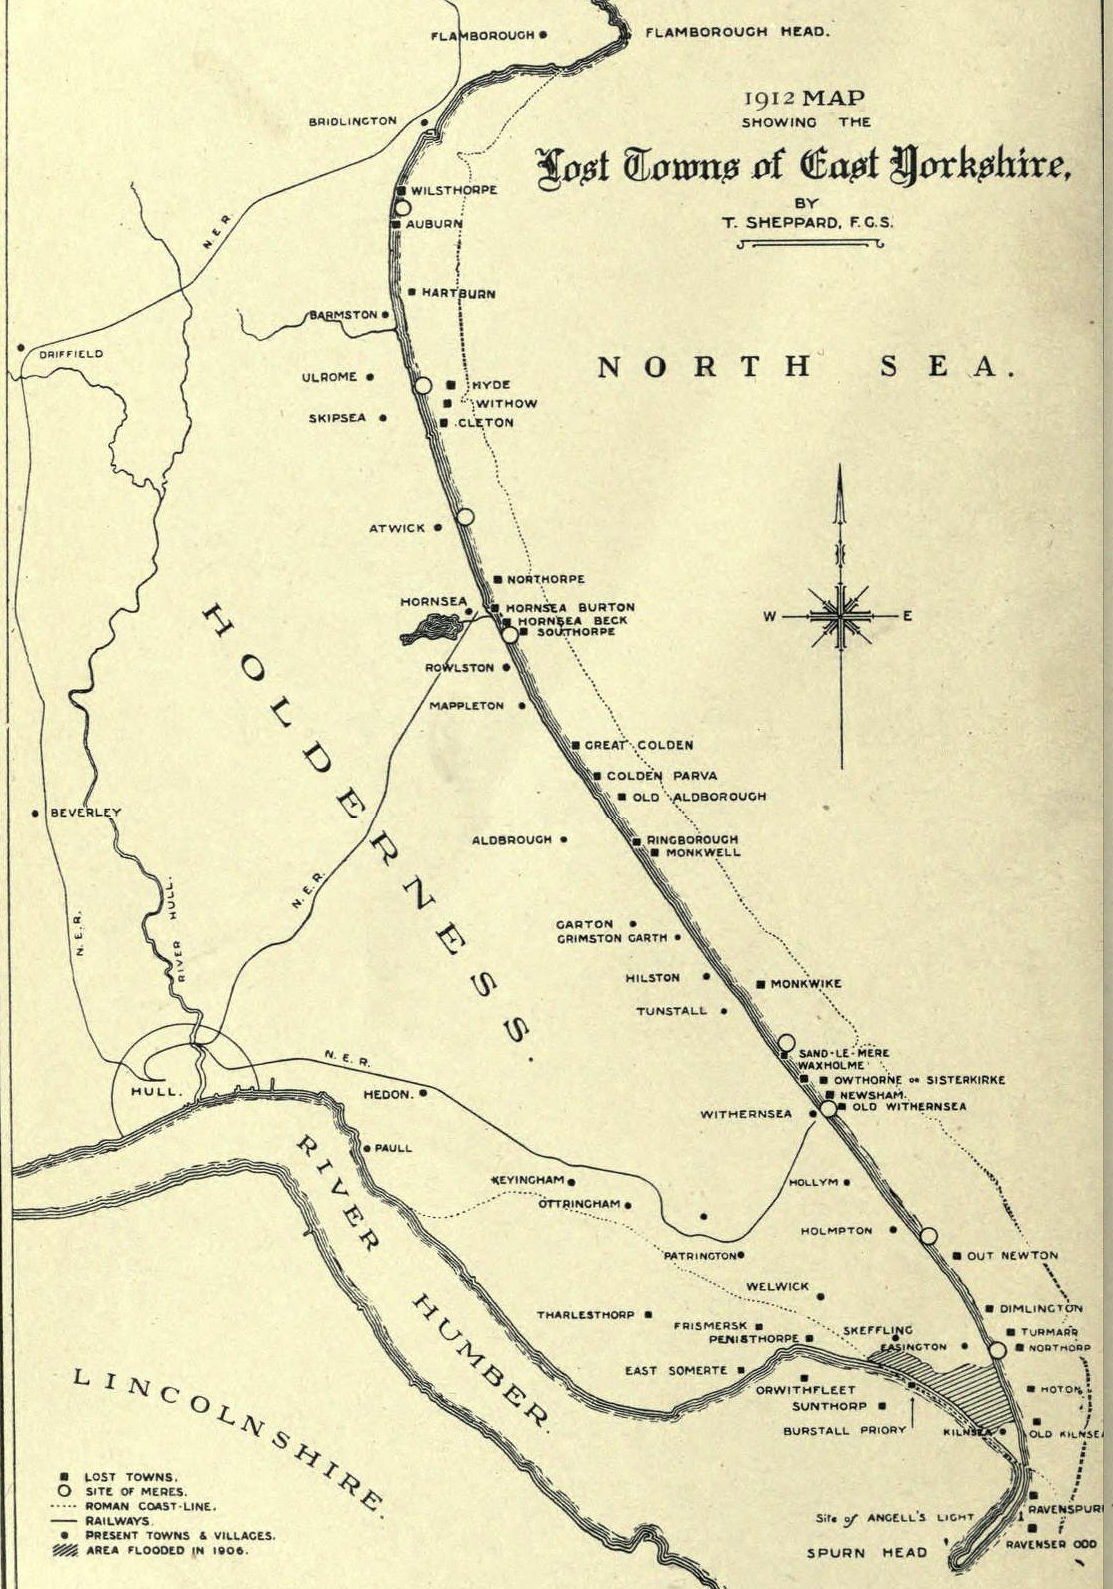 Map from 1912 showing the lost towns of East Yorkshire and where the ...